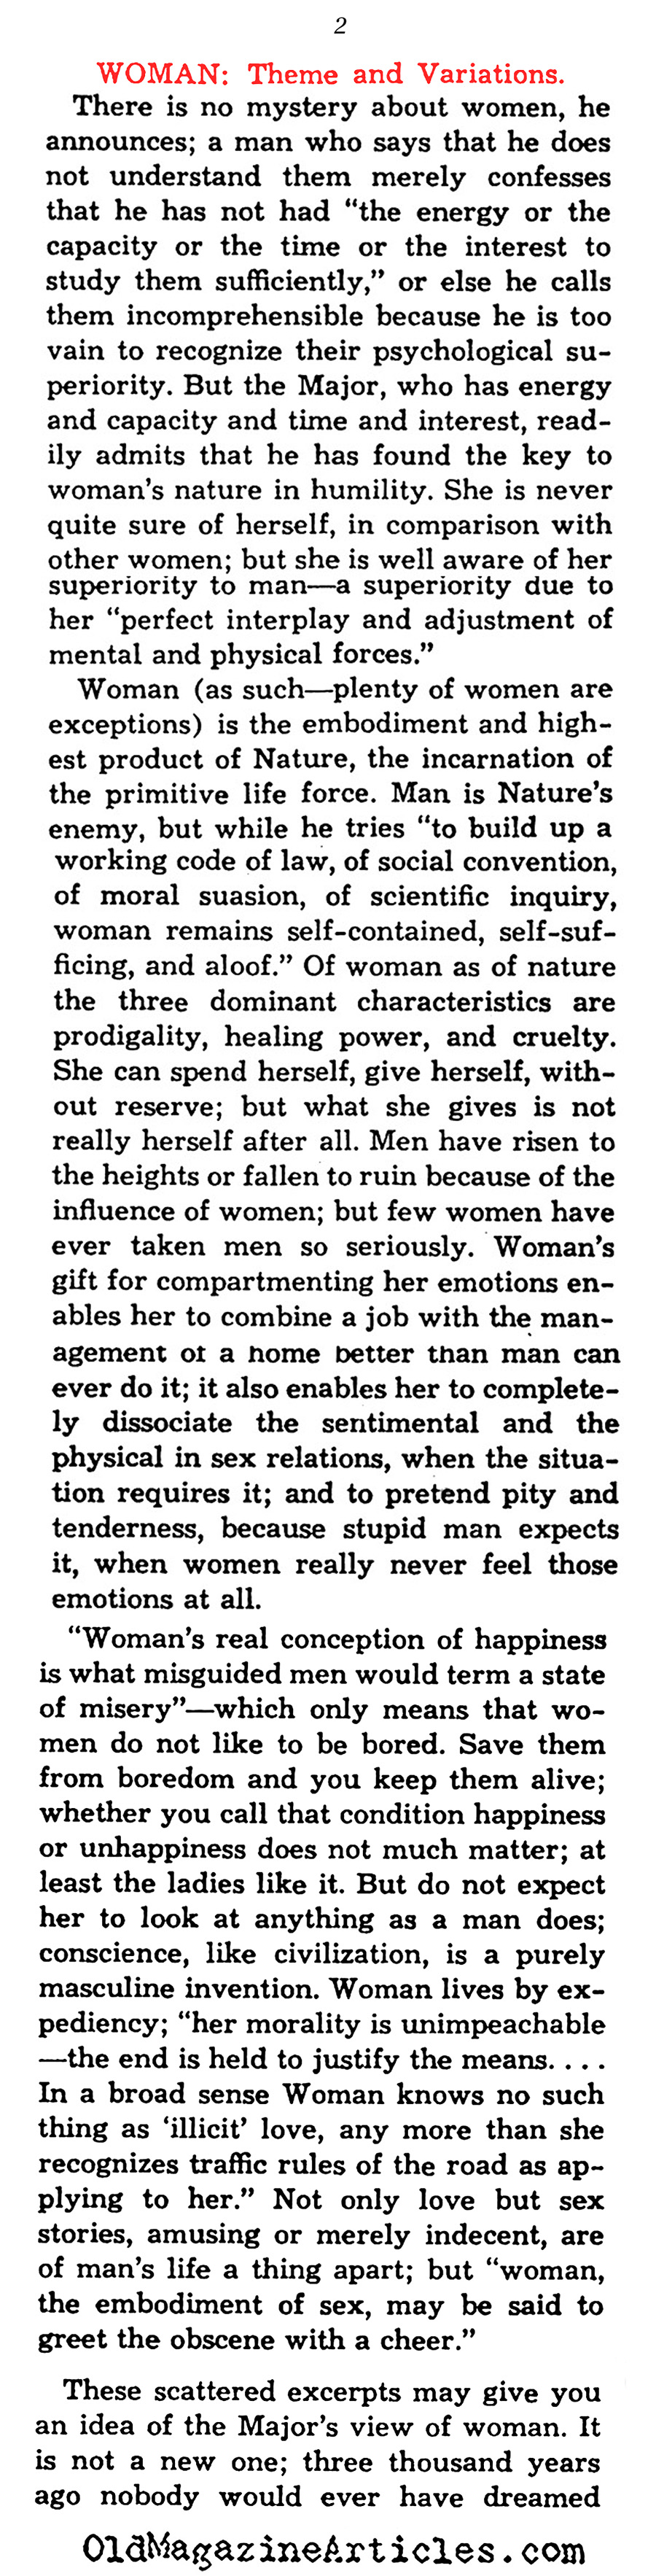 Another Addition to Man's Incomprehension of Woman... (The Saturday Review of Literature, 1932)